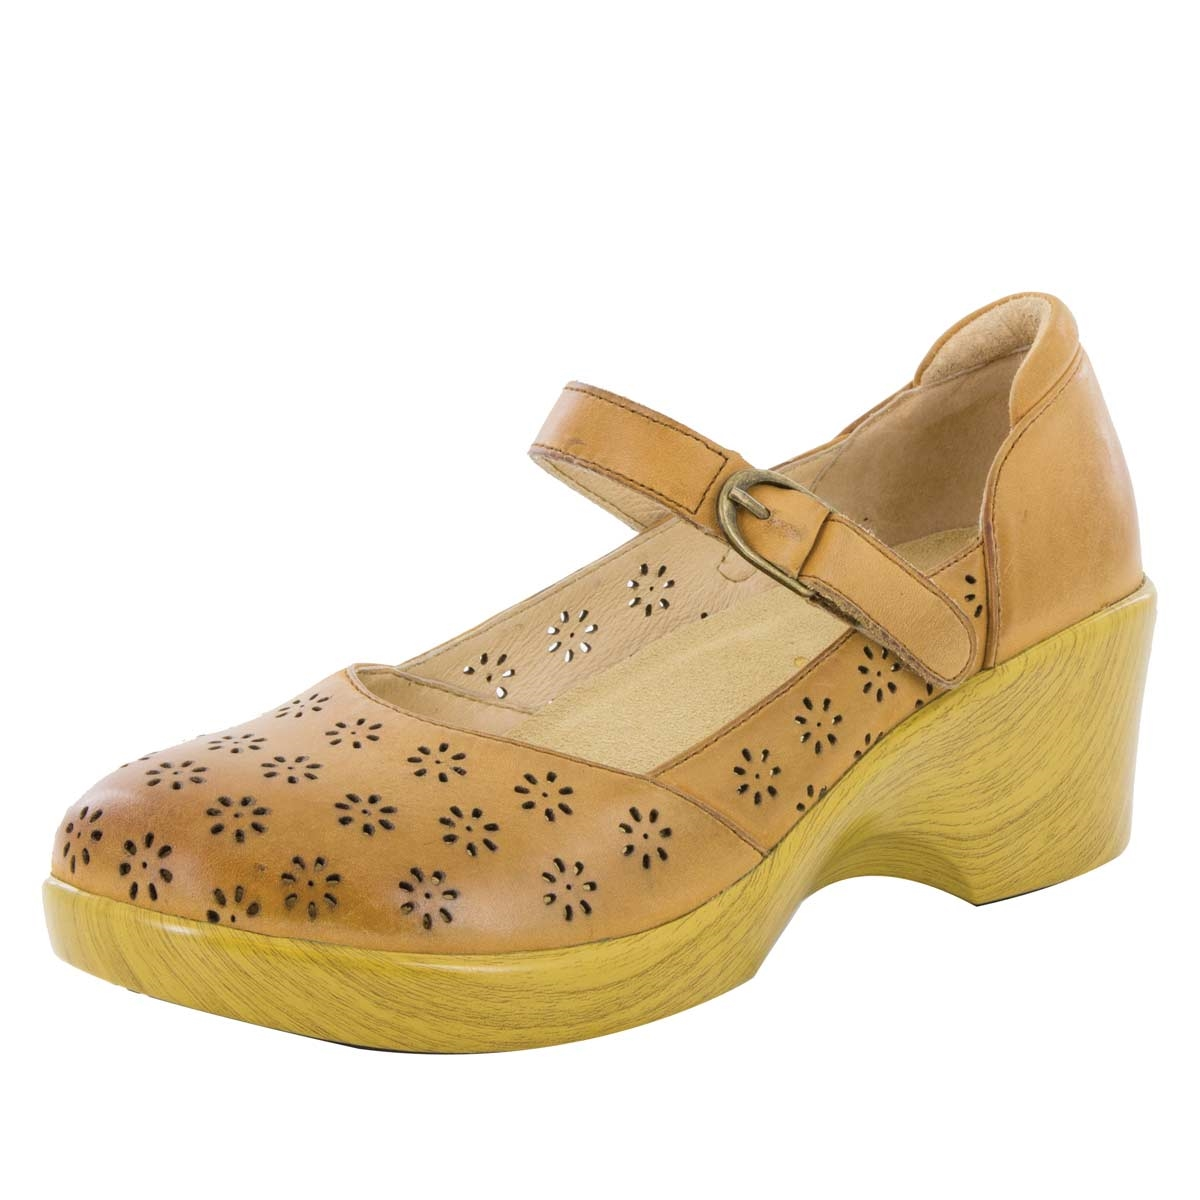 Alegria Rene Wedge Mary Janes kANyes7d